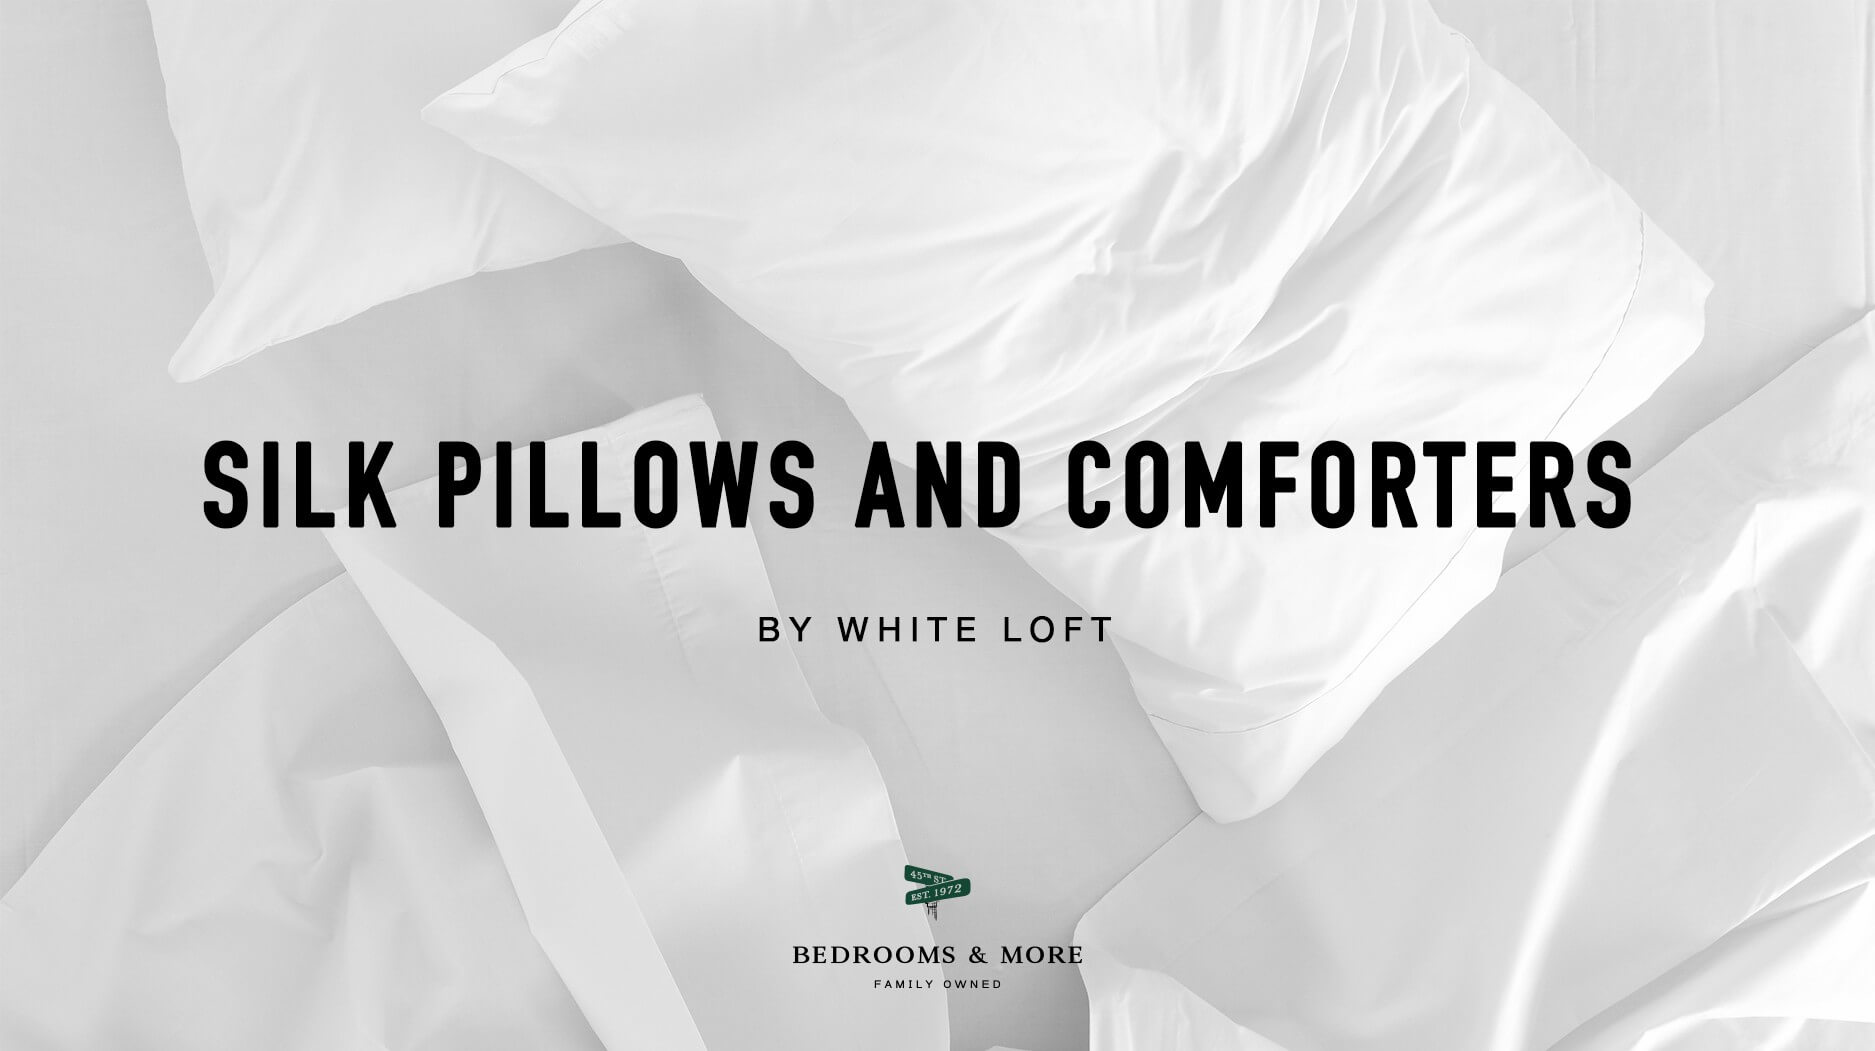 White Loft Pillows and Comforters